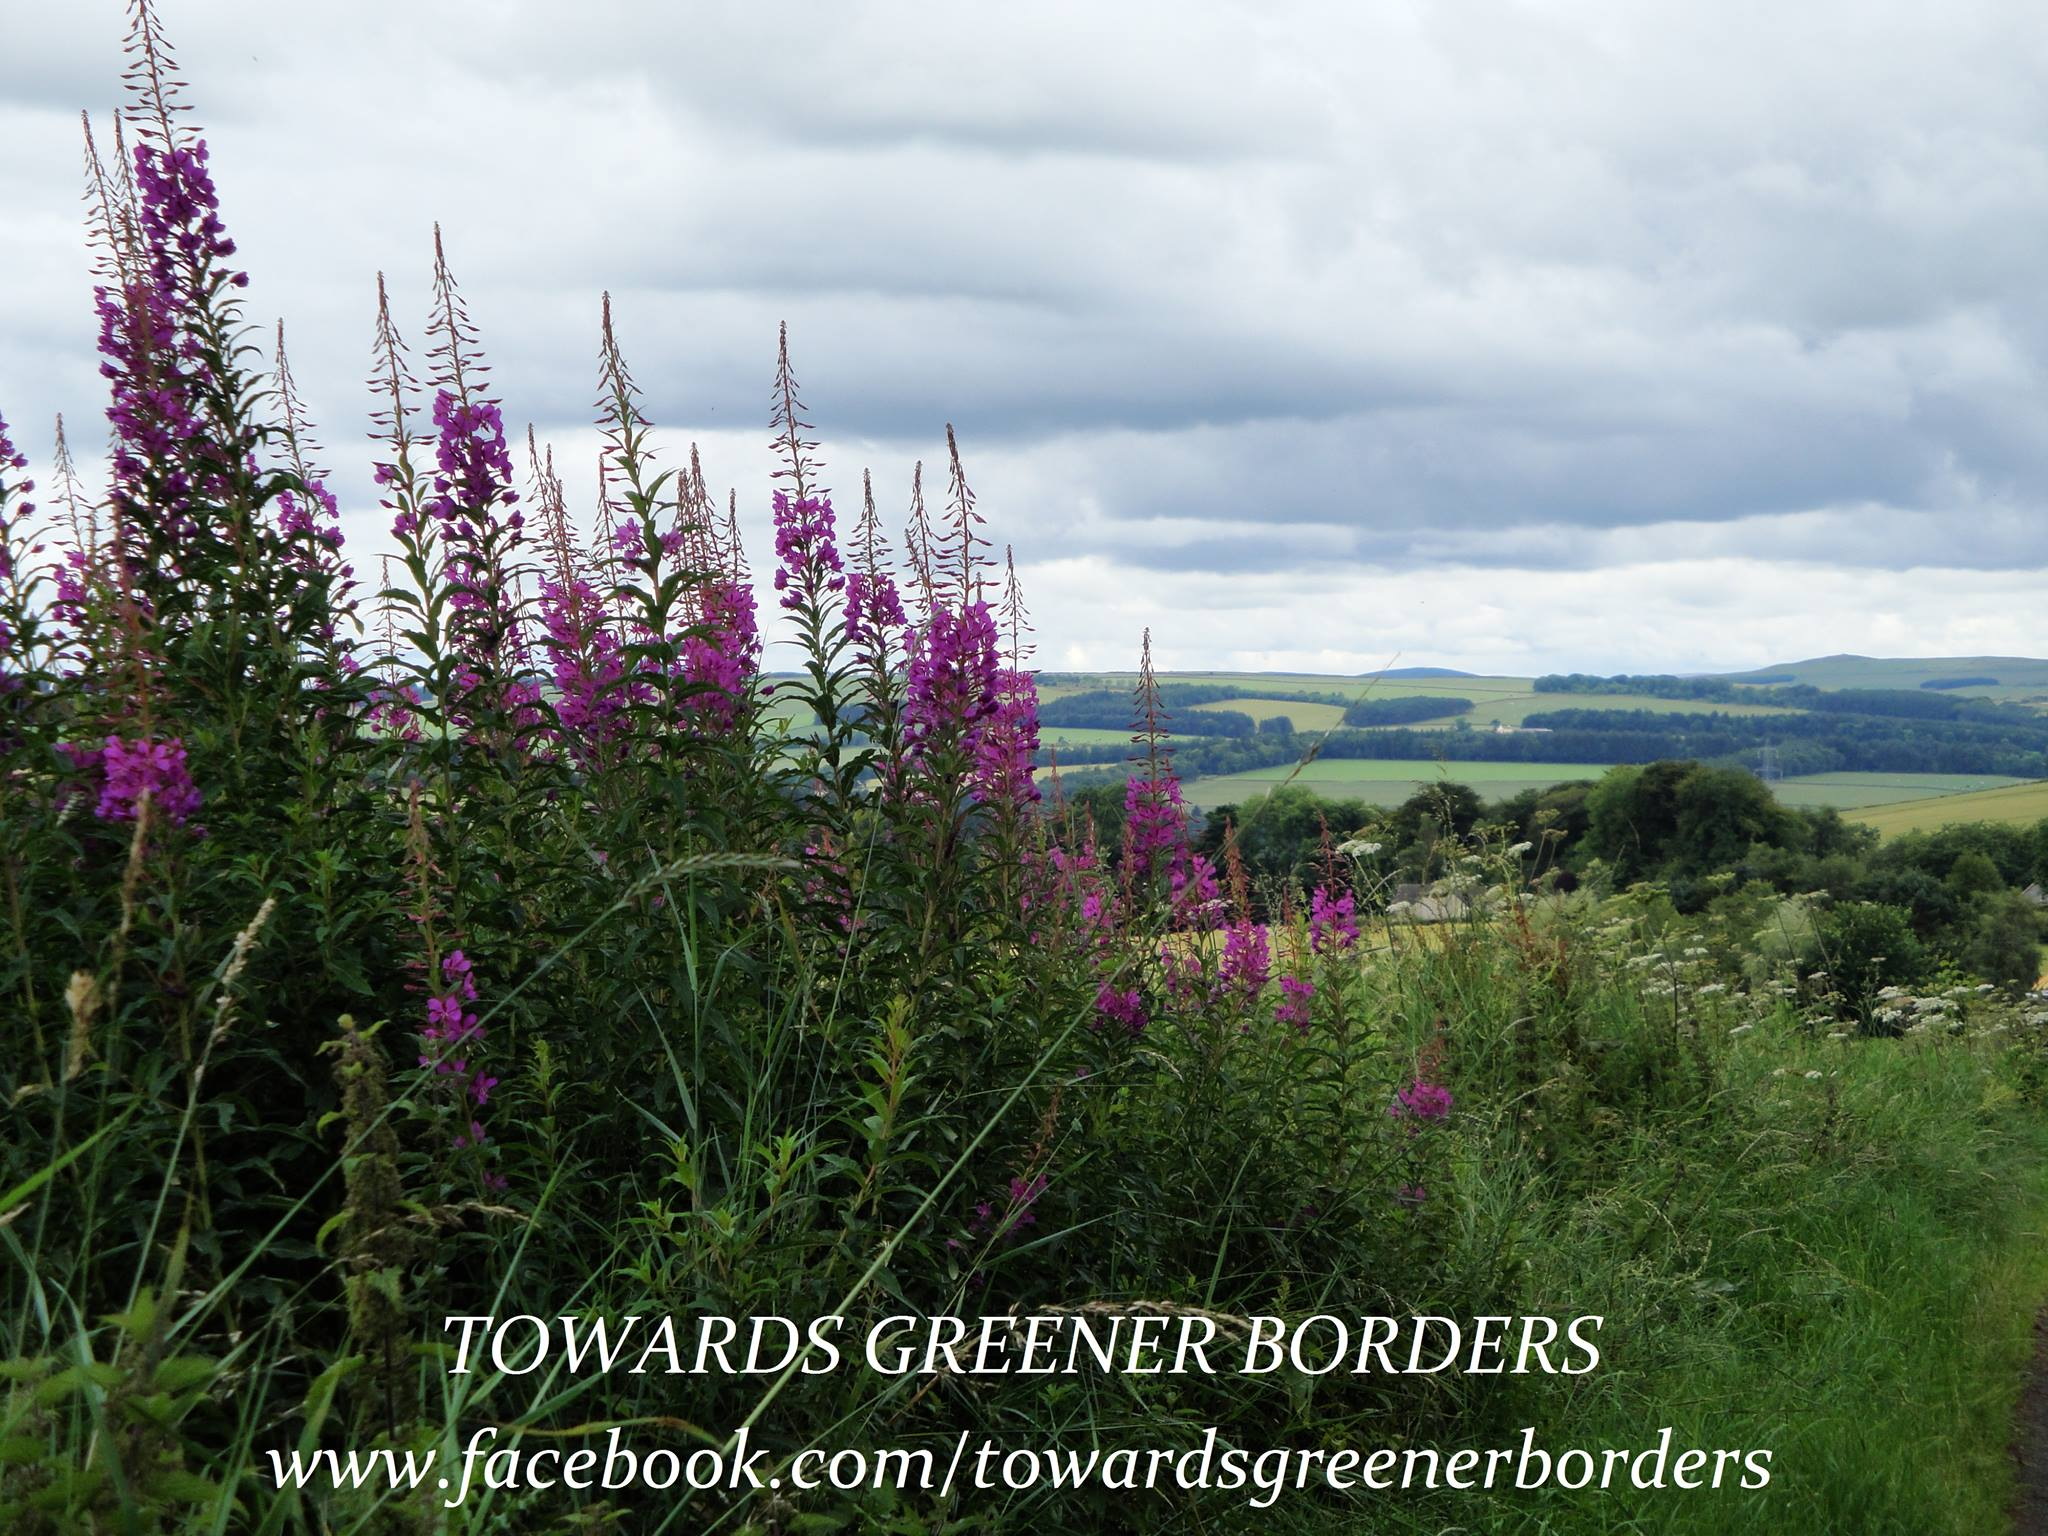 Countryside. Land. Trees. Sky. Hedgerows. Rosebay Willowherb. Views. Towards